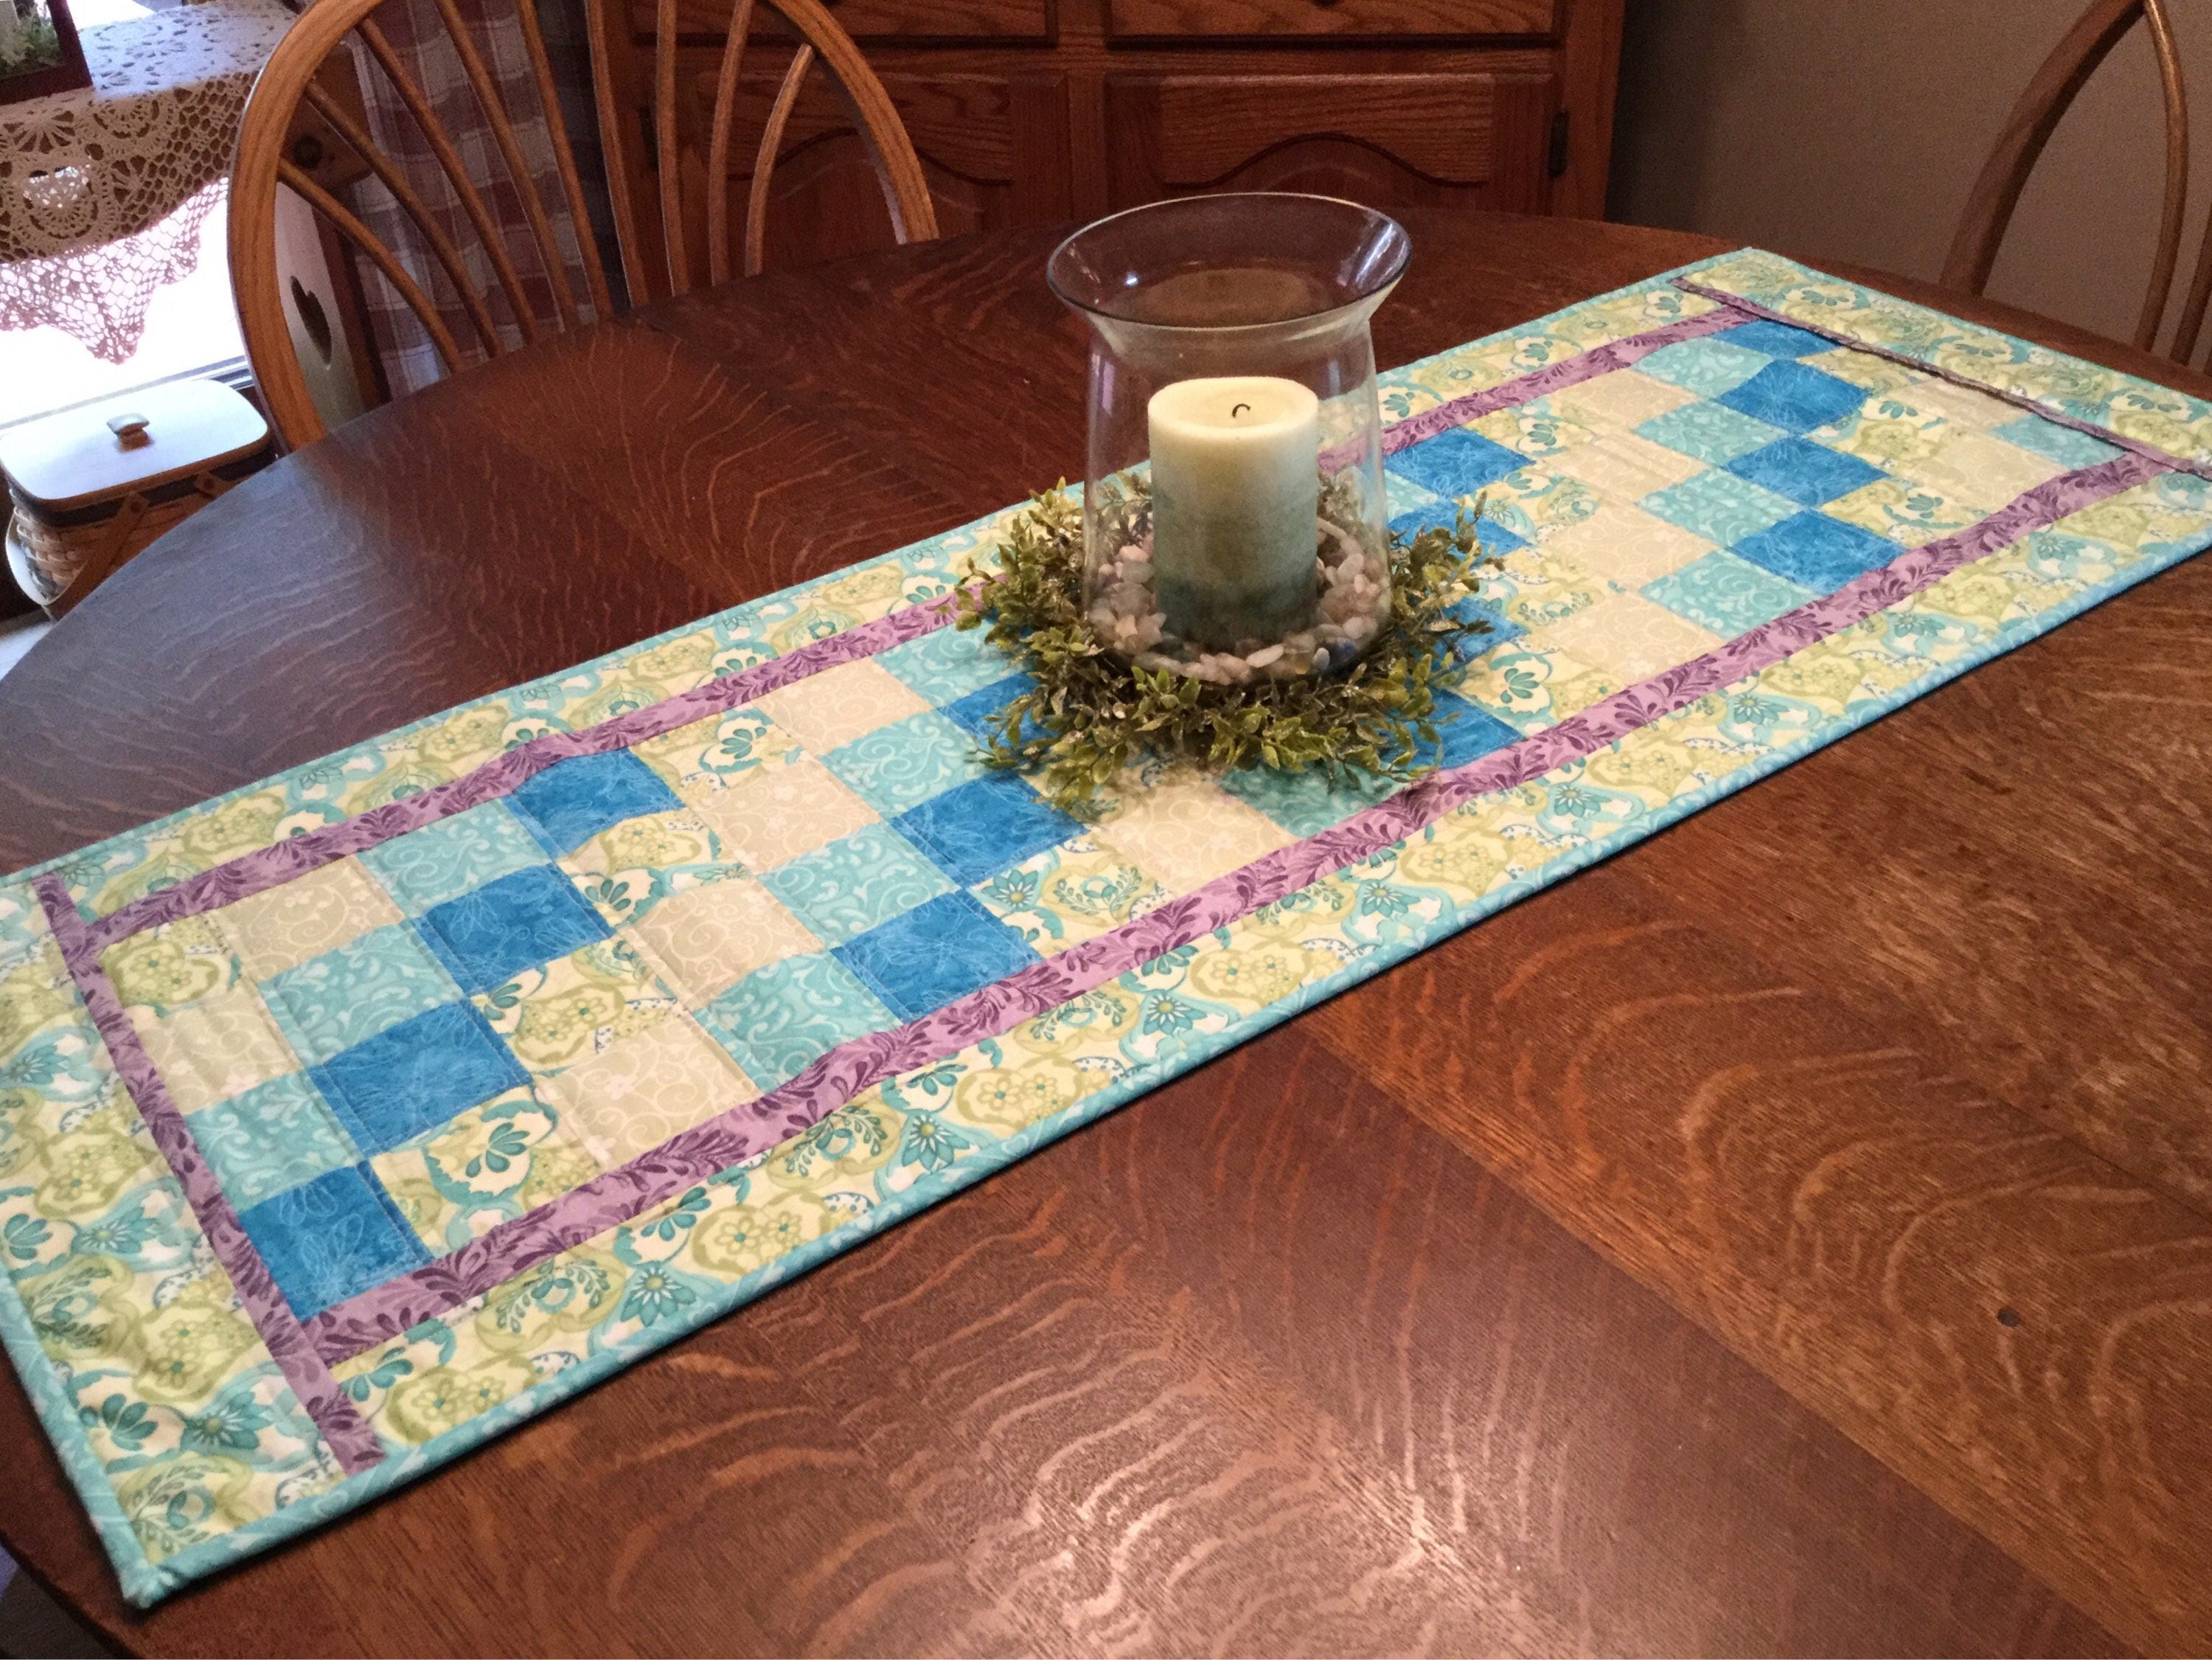 Table runner quilted table runner patchwork table runner pastel